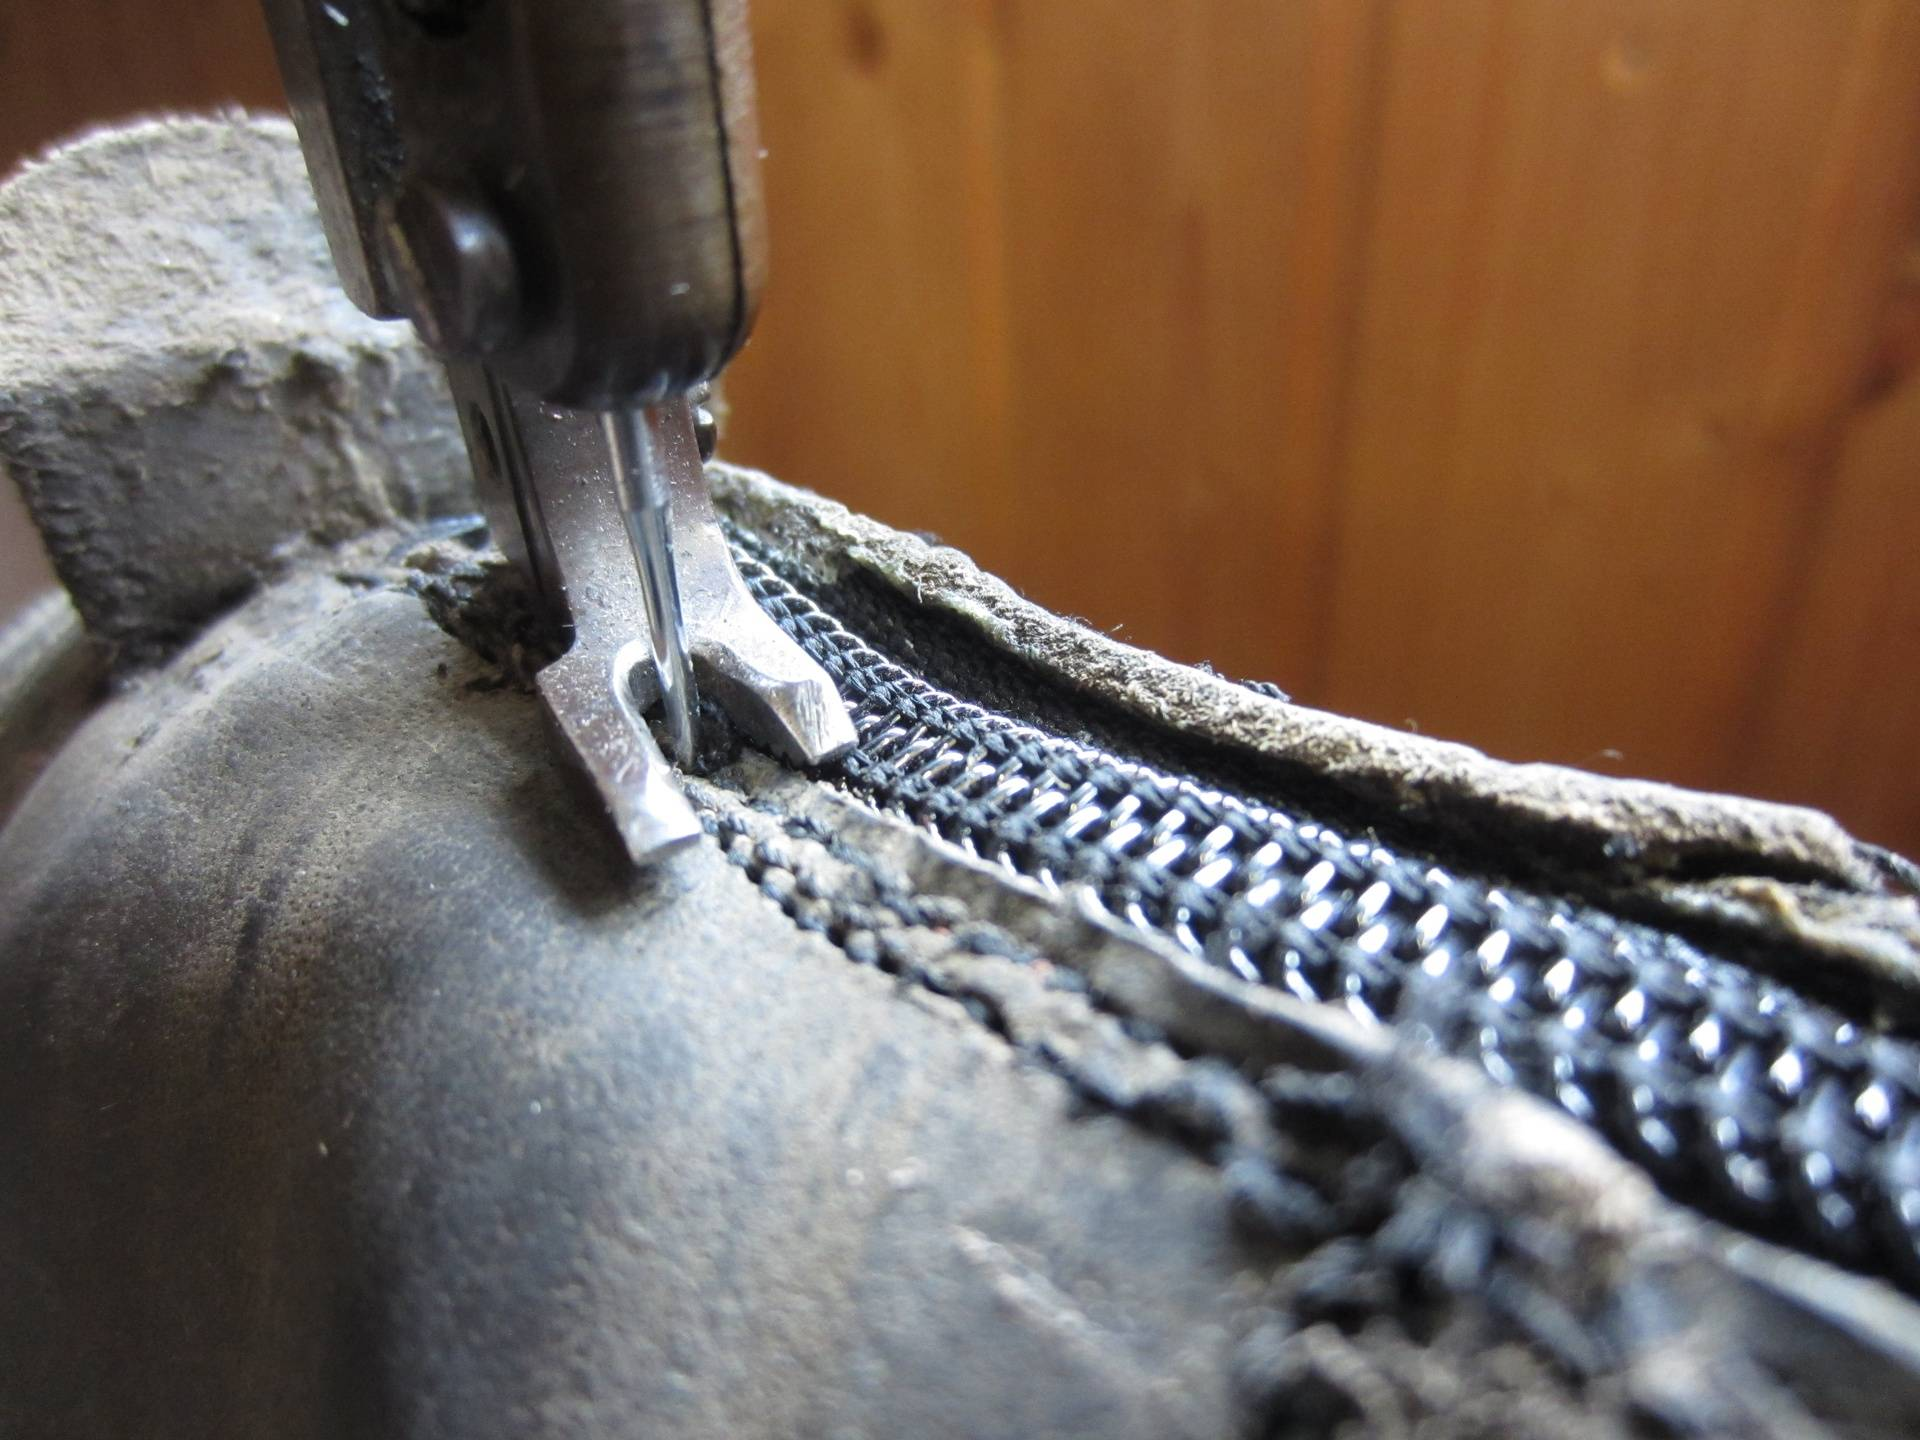 Best to double stitch this part